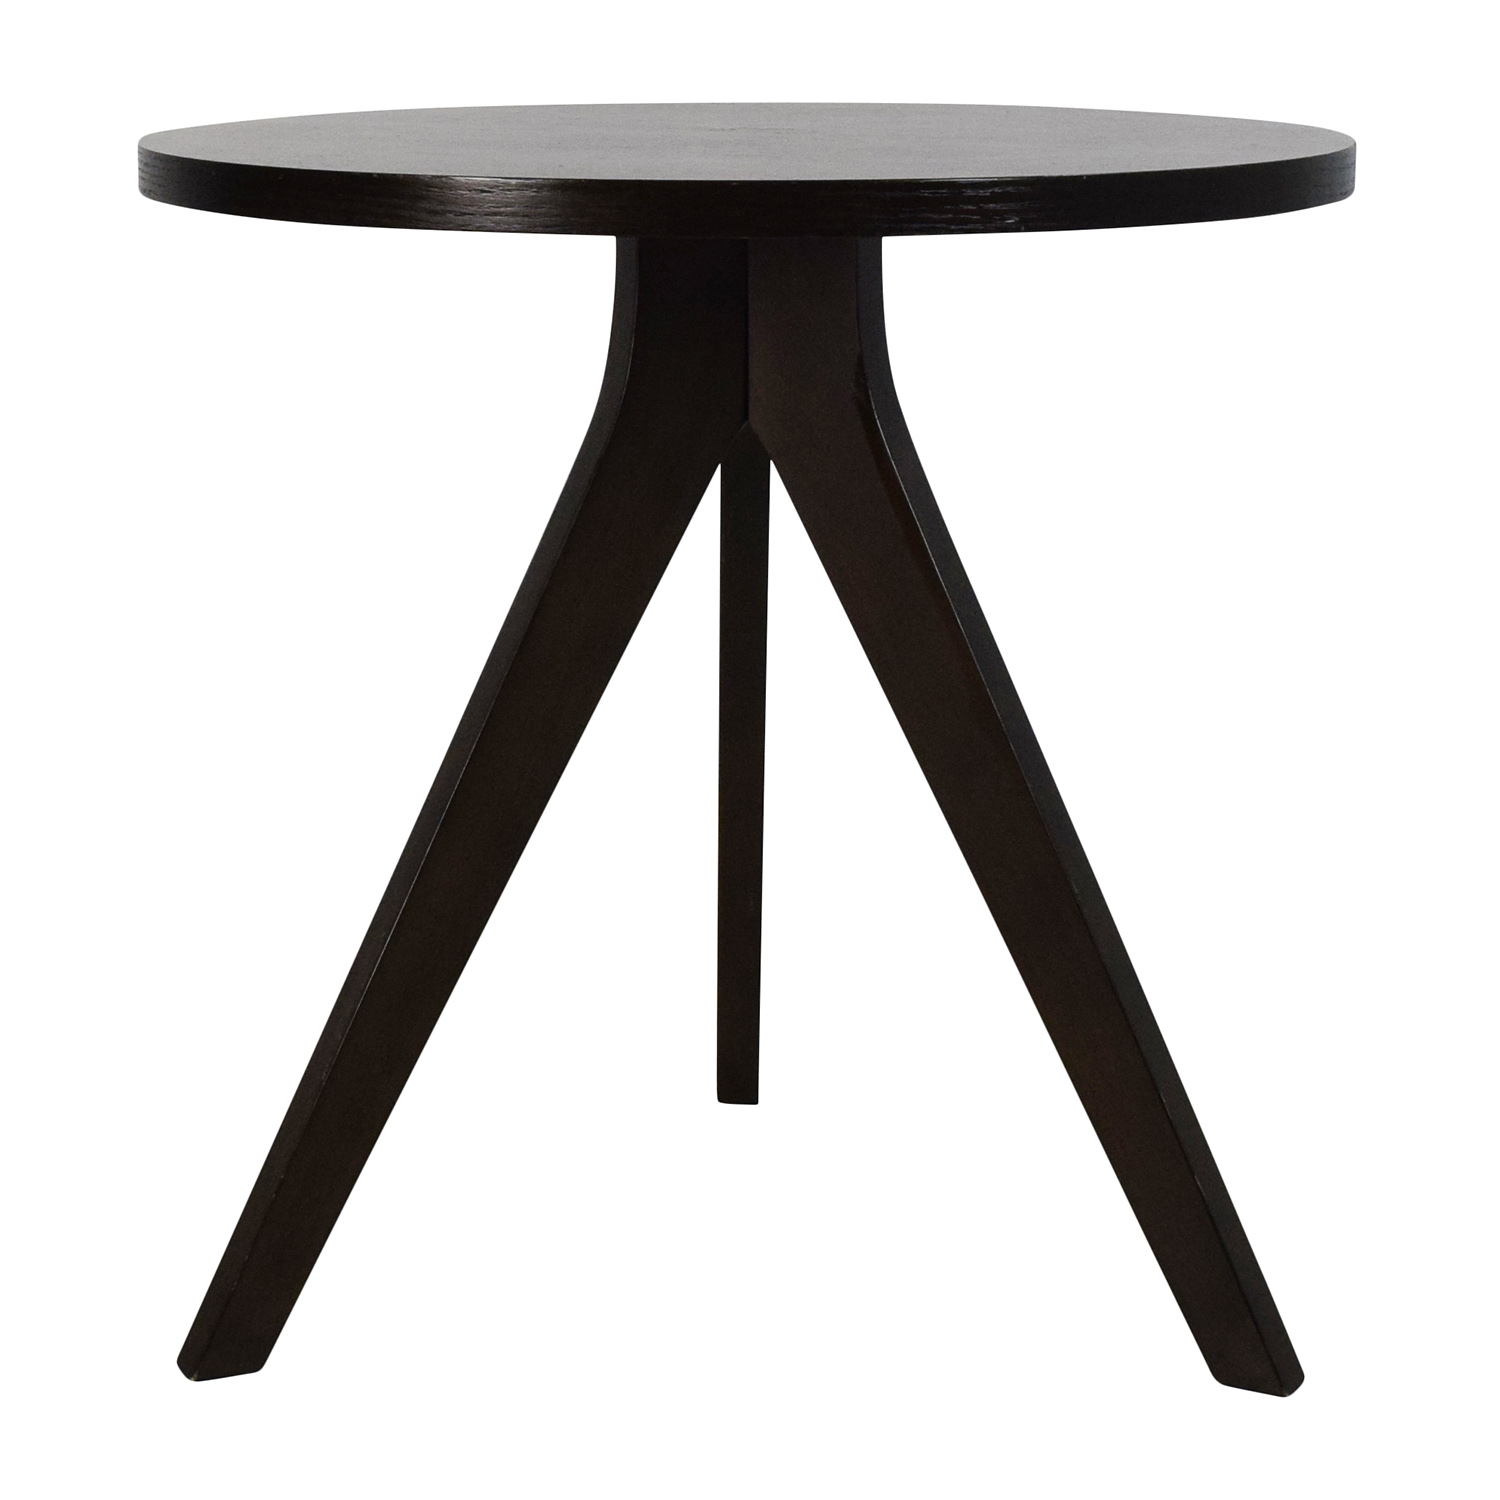 West Elm West Elm Tripod Side Table price